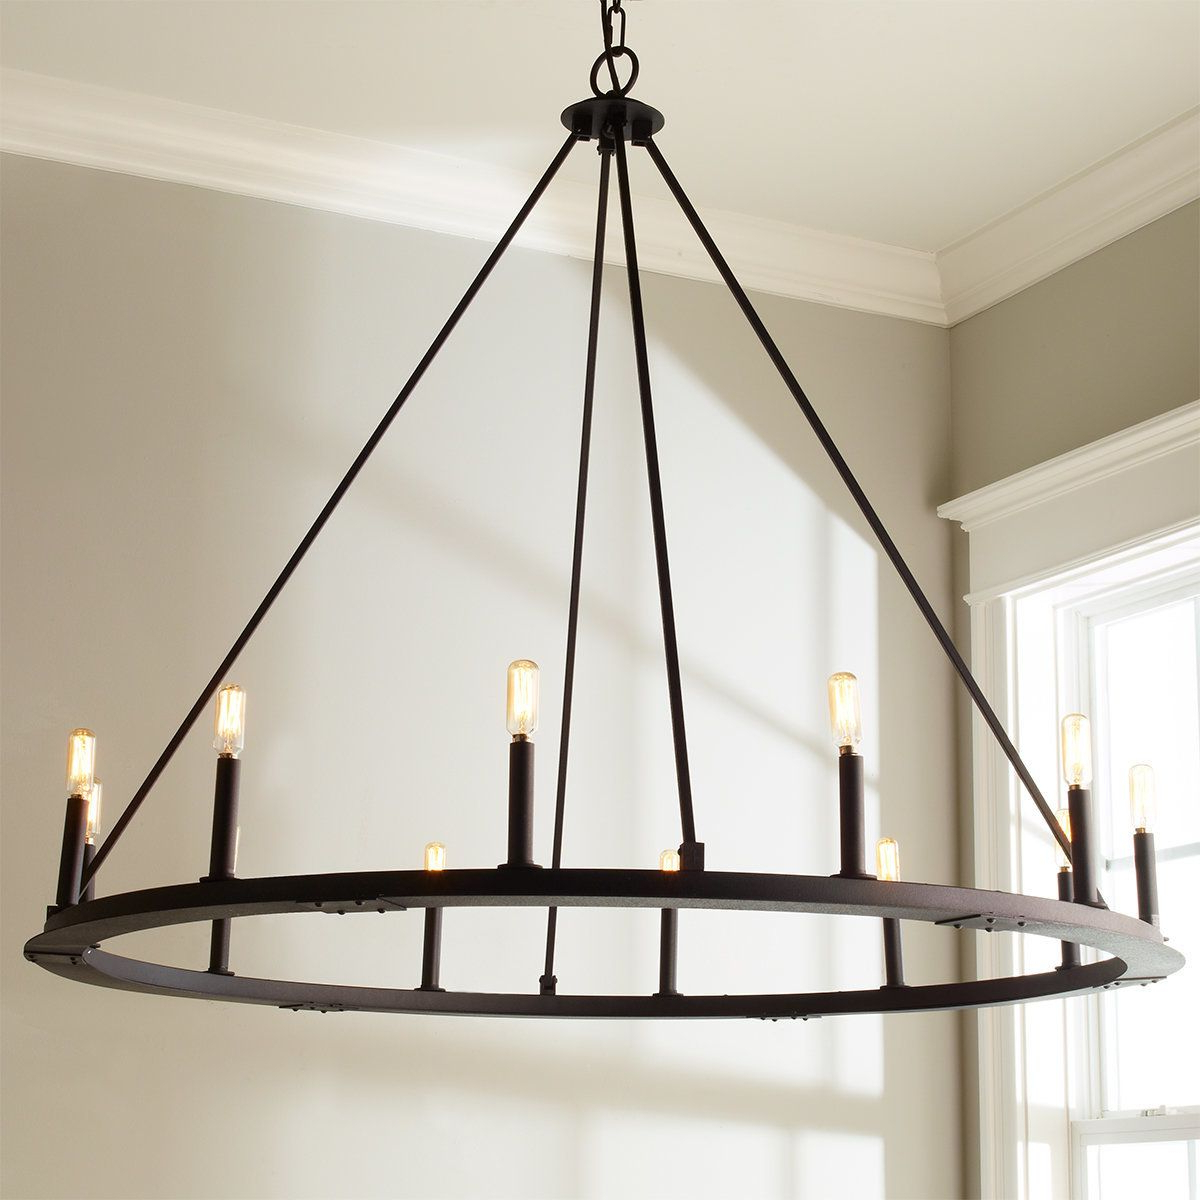 Shayla 12 Light Wagon Wheel Chandeliers Intended For Preferred Check Out Minimalist Iron Ring Chandelier – 12 Light From (View 15 of 25)